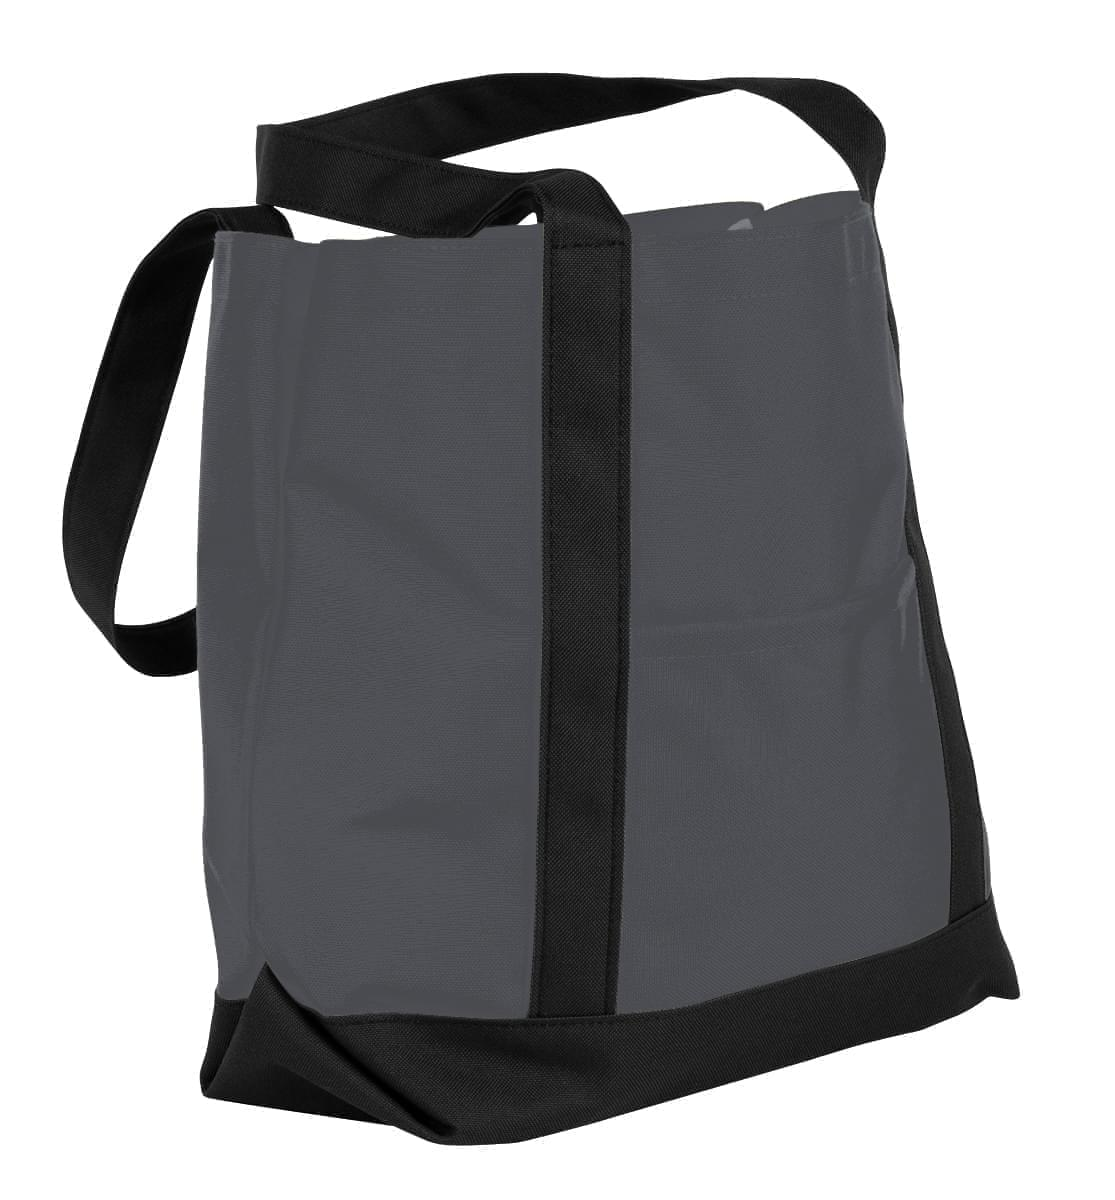 USA Made Nylon Poly Boat Tote Bags, Graphite-Black, XAACL1UARC